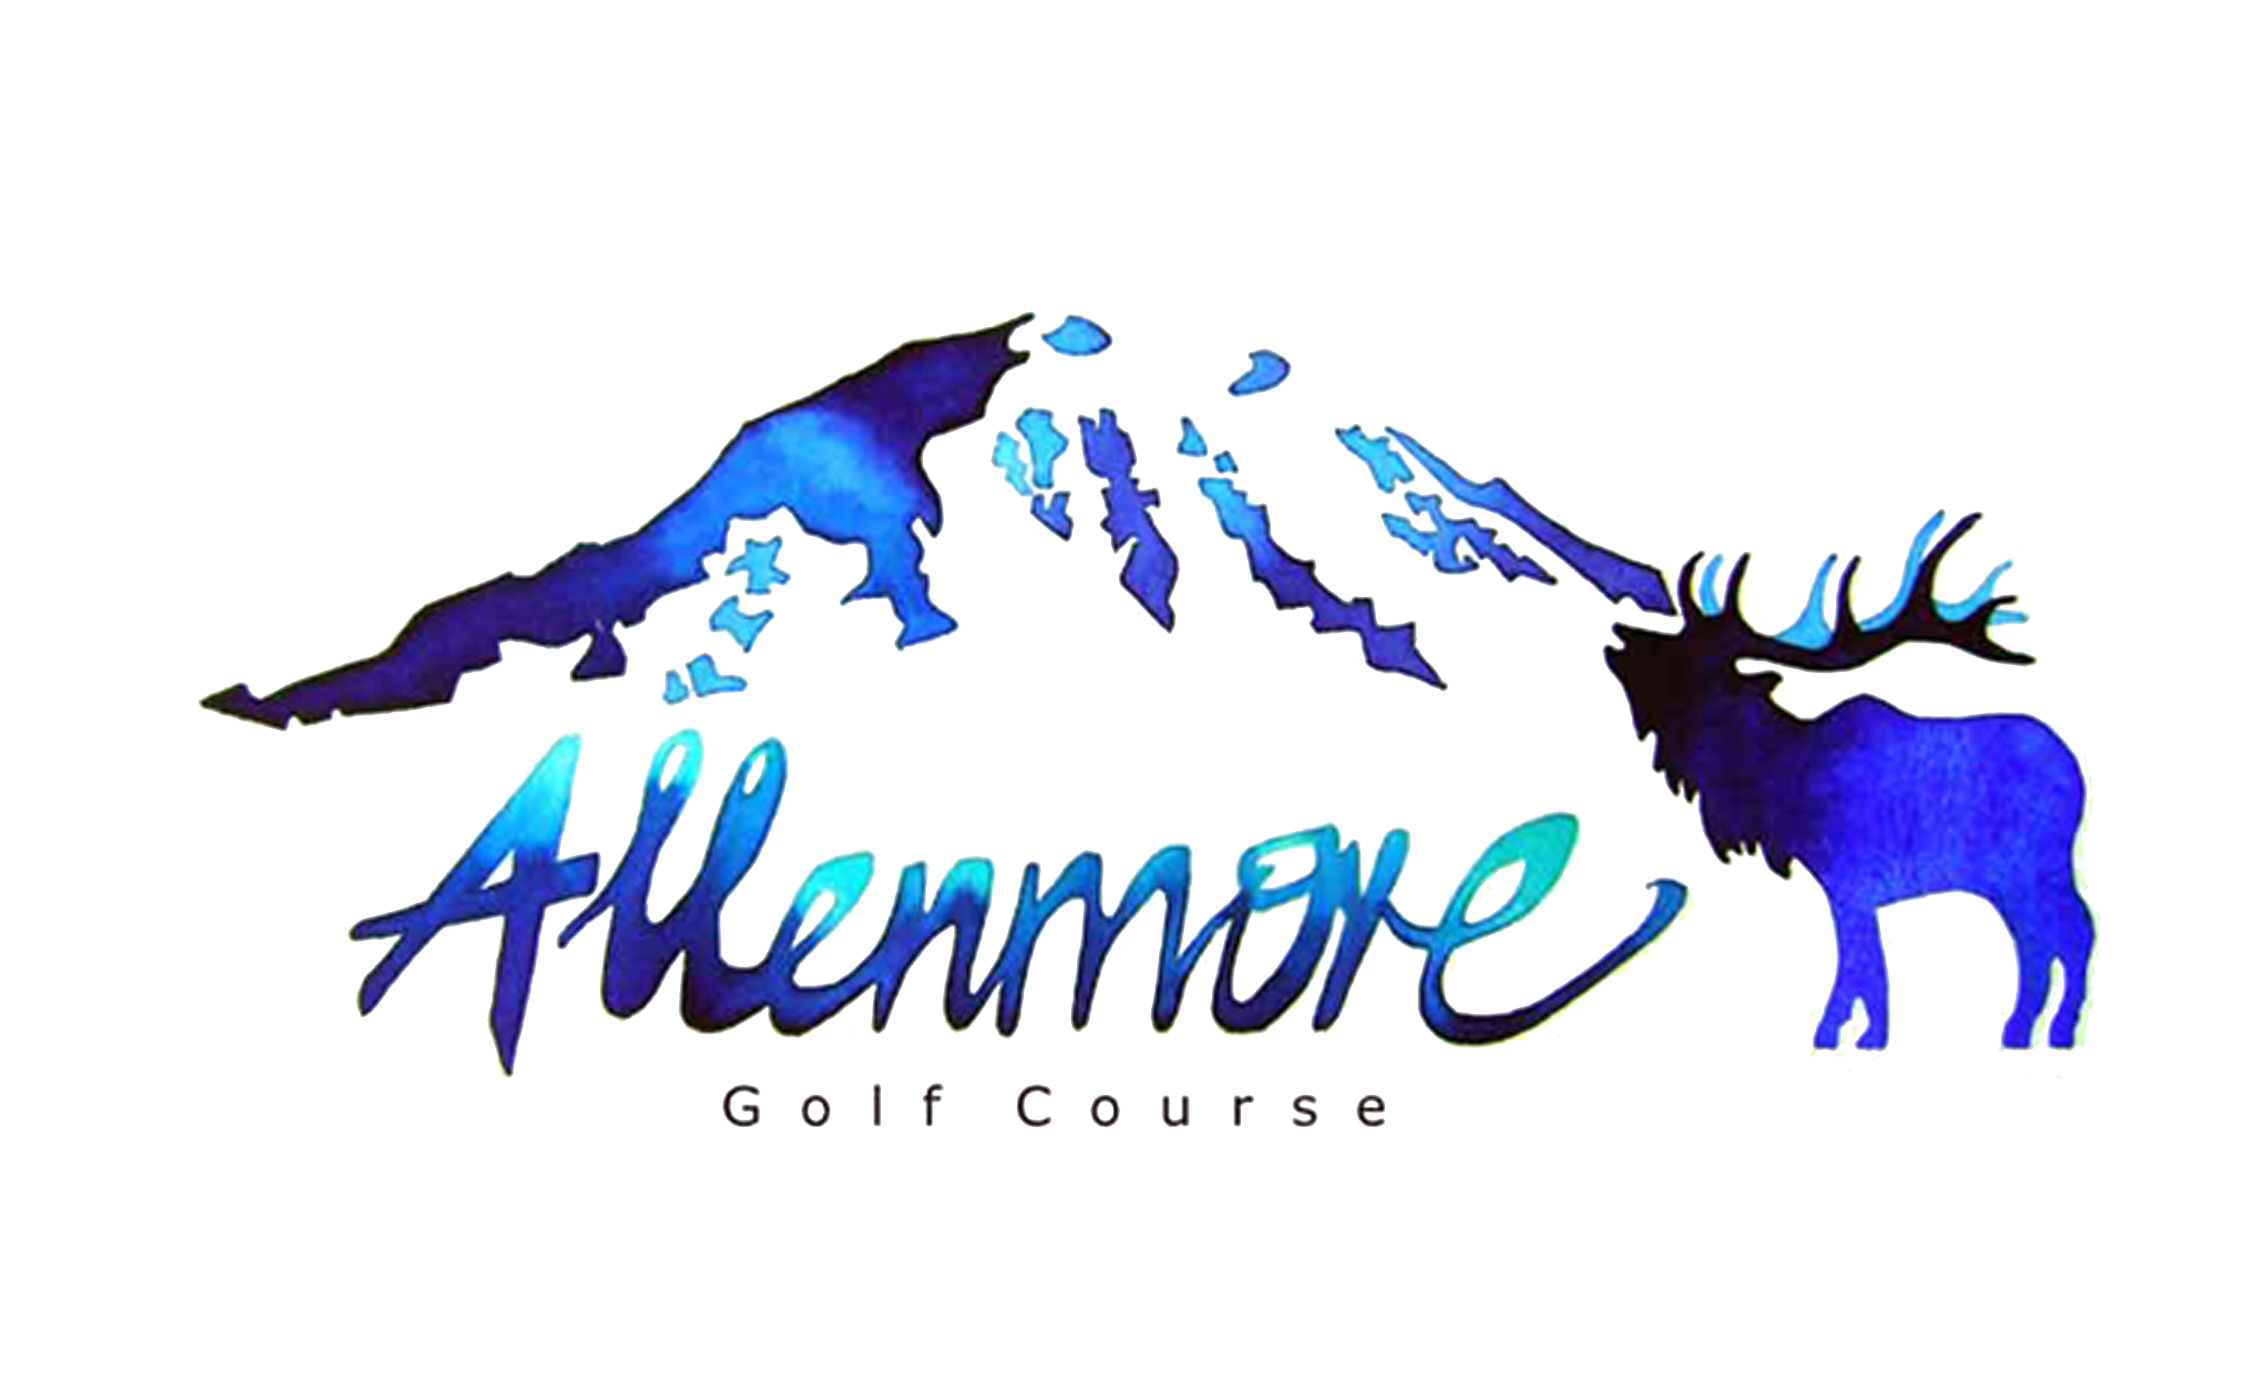 Allenmore Public Golf Course